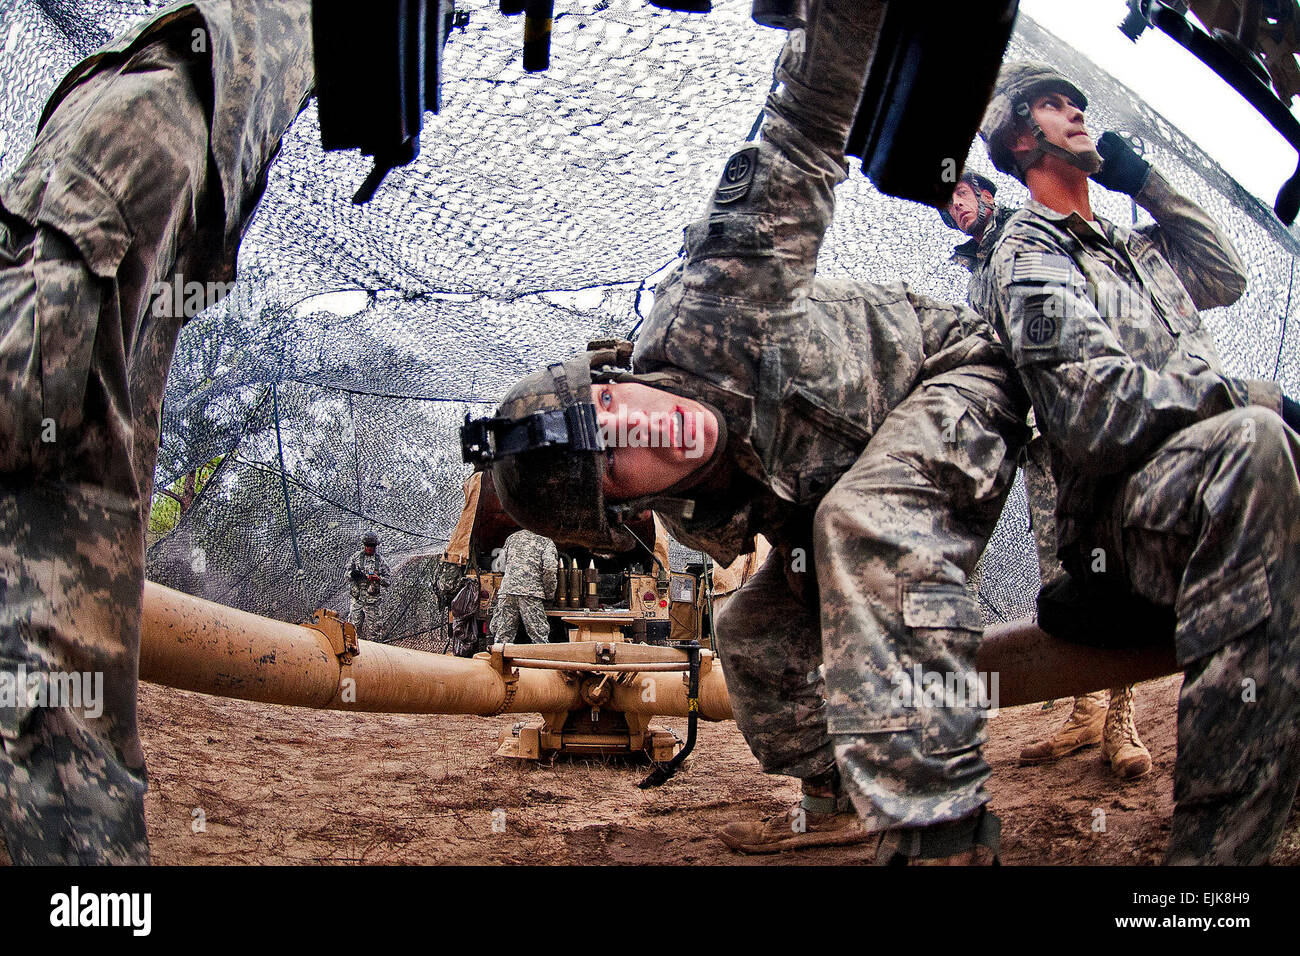 Spc. Michael Davis, center, checks the breech of an M119A2 105mm  lightweight howitzer